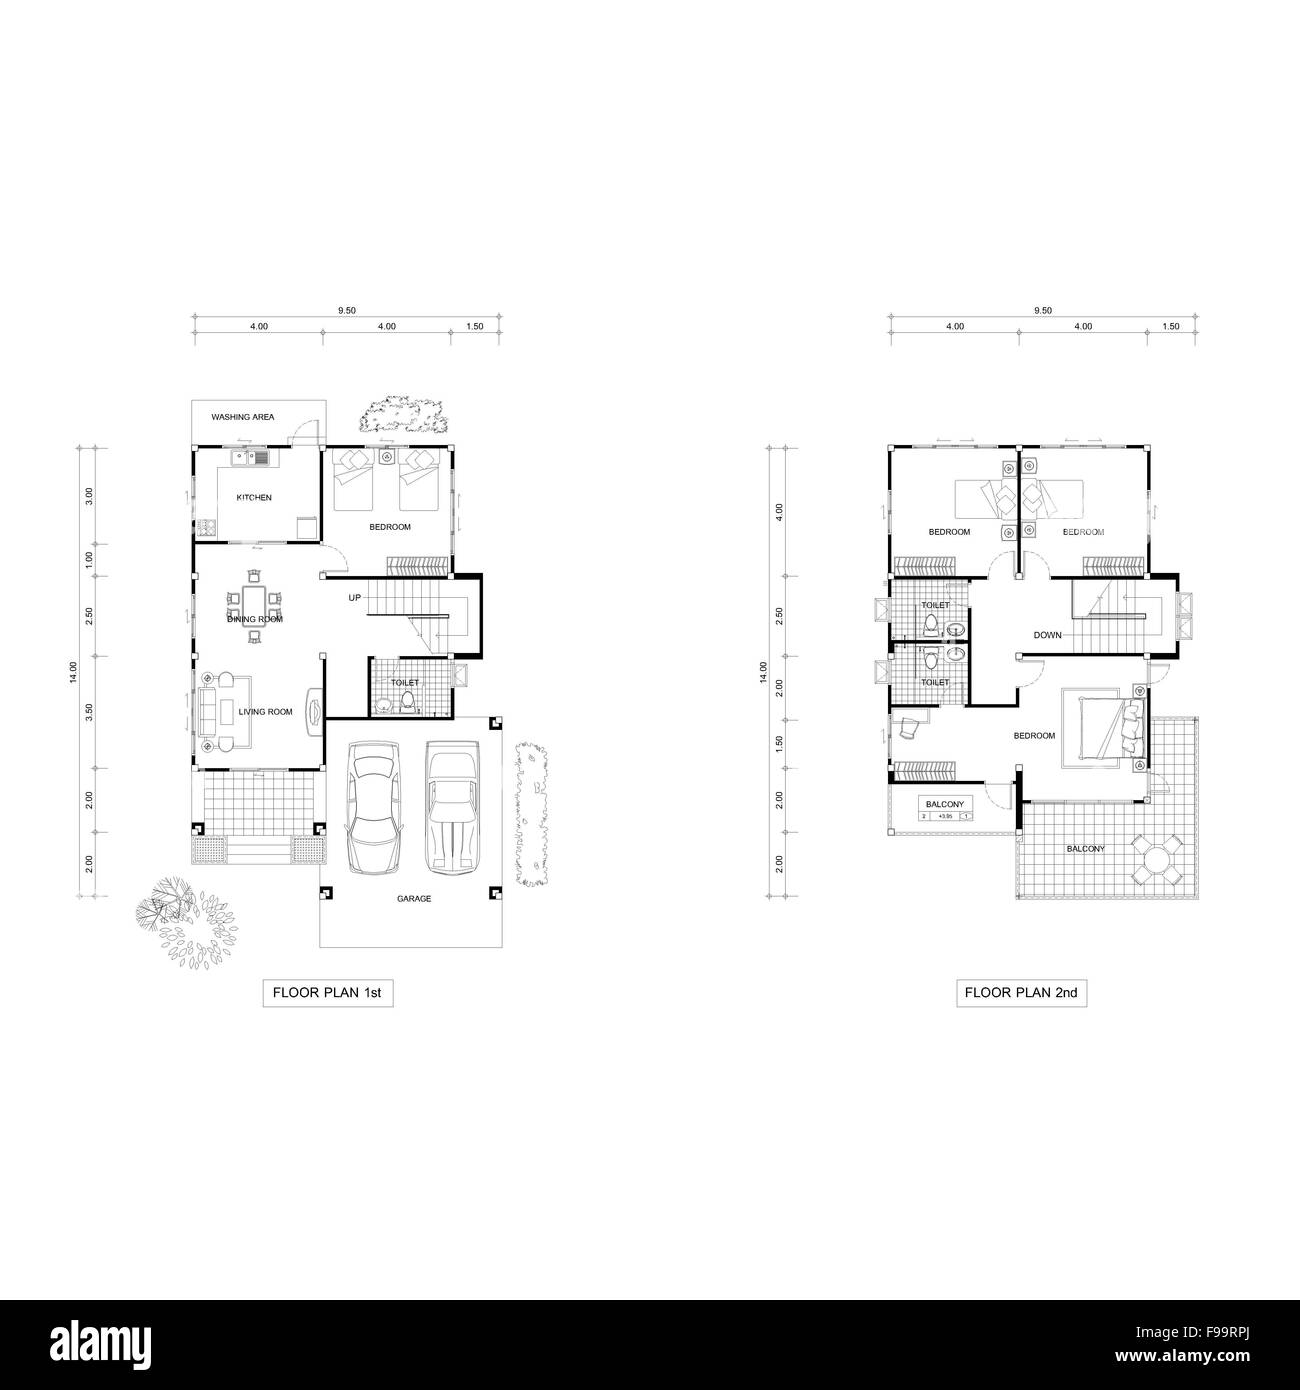 architecture plan drawing design house plans downstairs and stock architecture plan drawing design house plans downstairs and upstairs